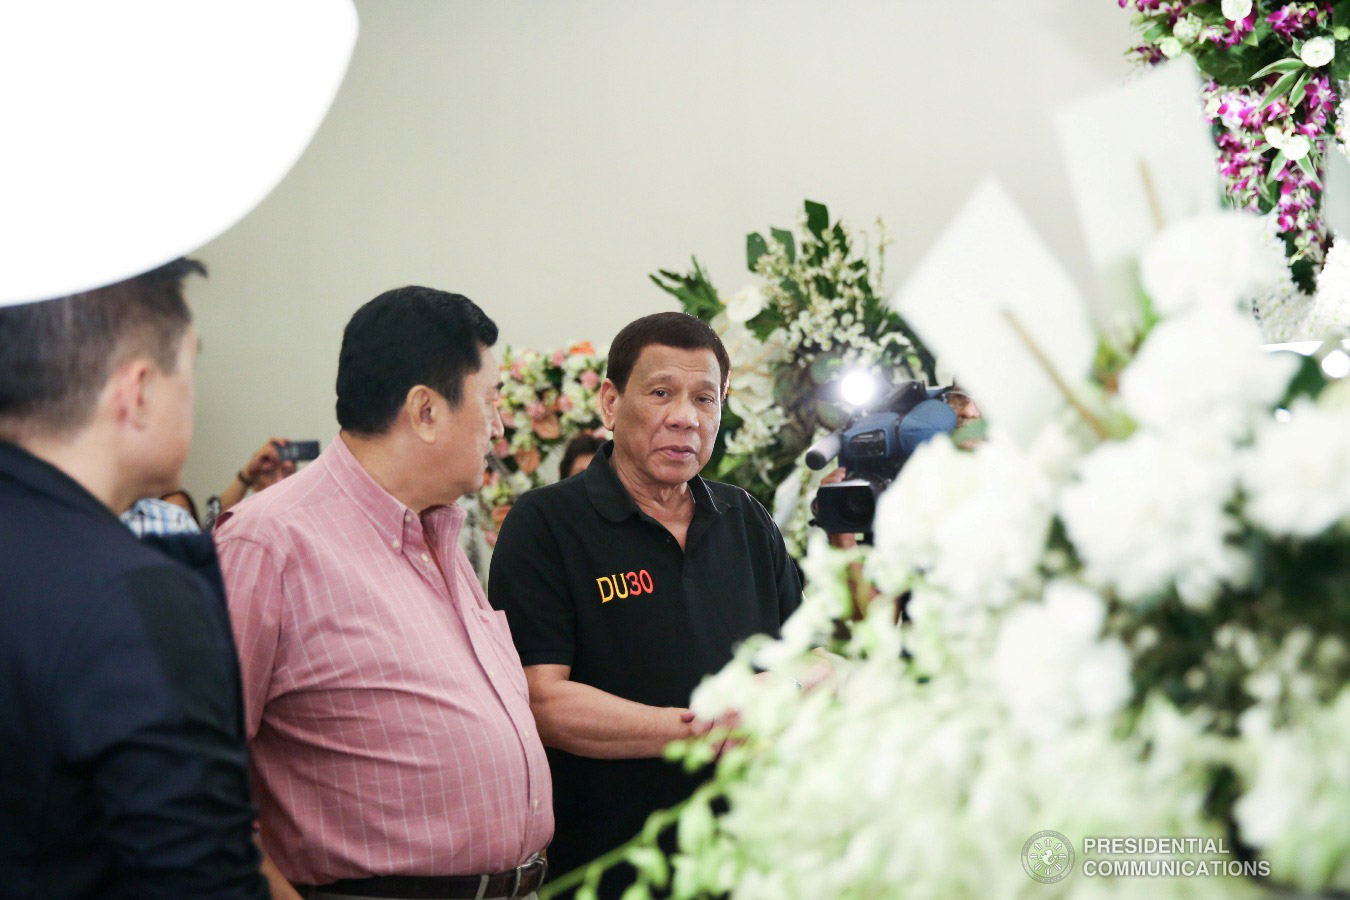 President Rodrigo Roa Duterte condoles with Labor and Employment Undersecretary Jacinto Paras as the President visited the wake of the Undersecretary's wife Olivia Paras at the Heritage Park in Taguig City on February 5, 2019. ALFRED FRIAS/PRESIDENTIAL PHOTO